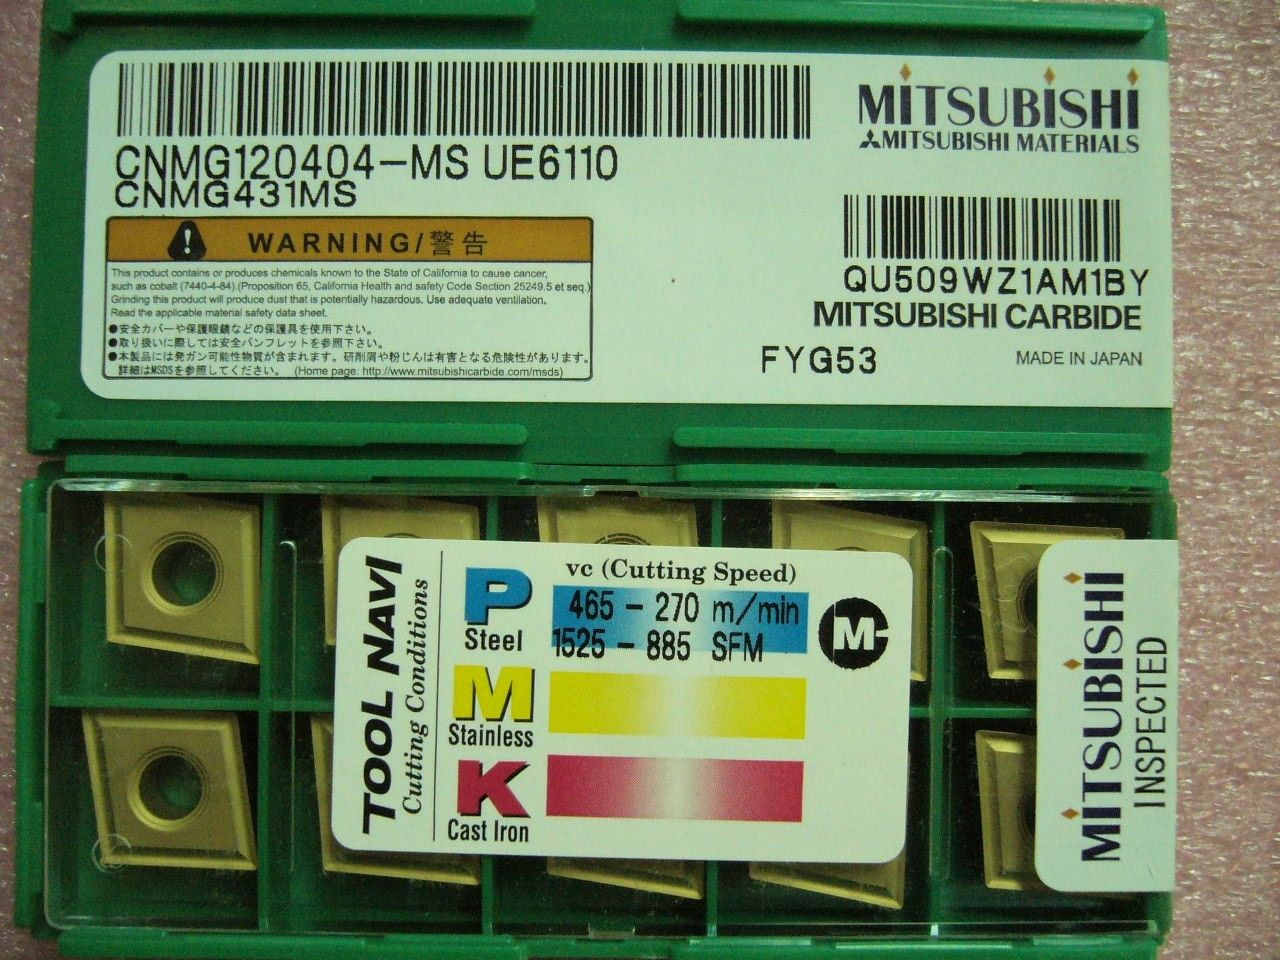 QTY 20x Mitsubishi CNMG431MS CNMG120404-MS UE6110 for steel